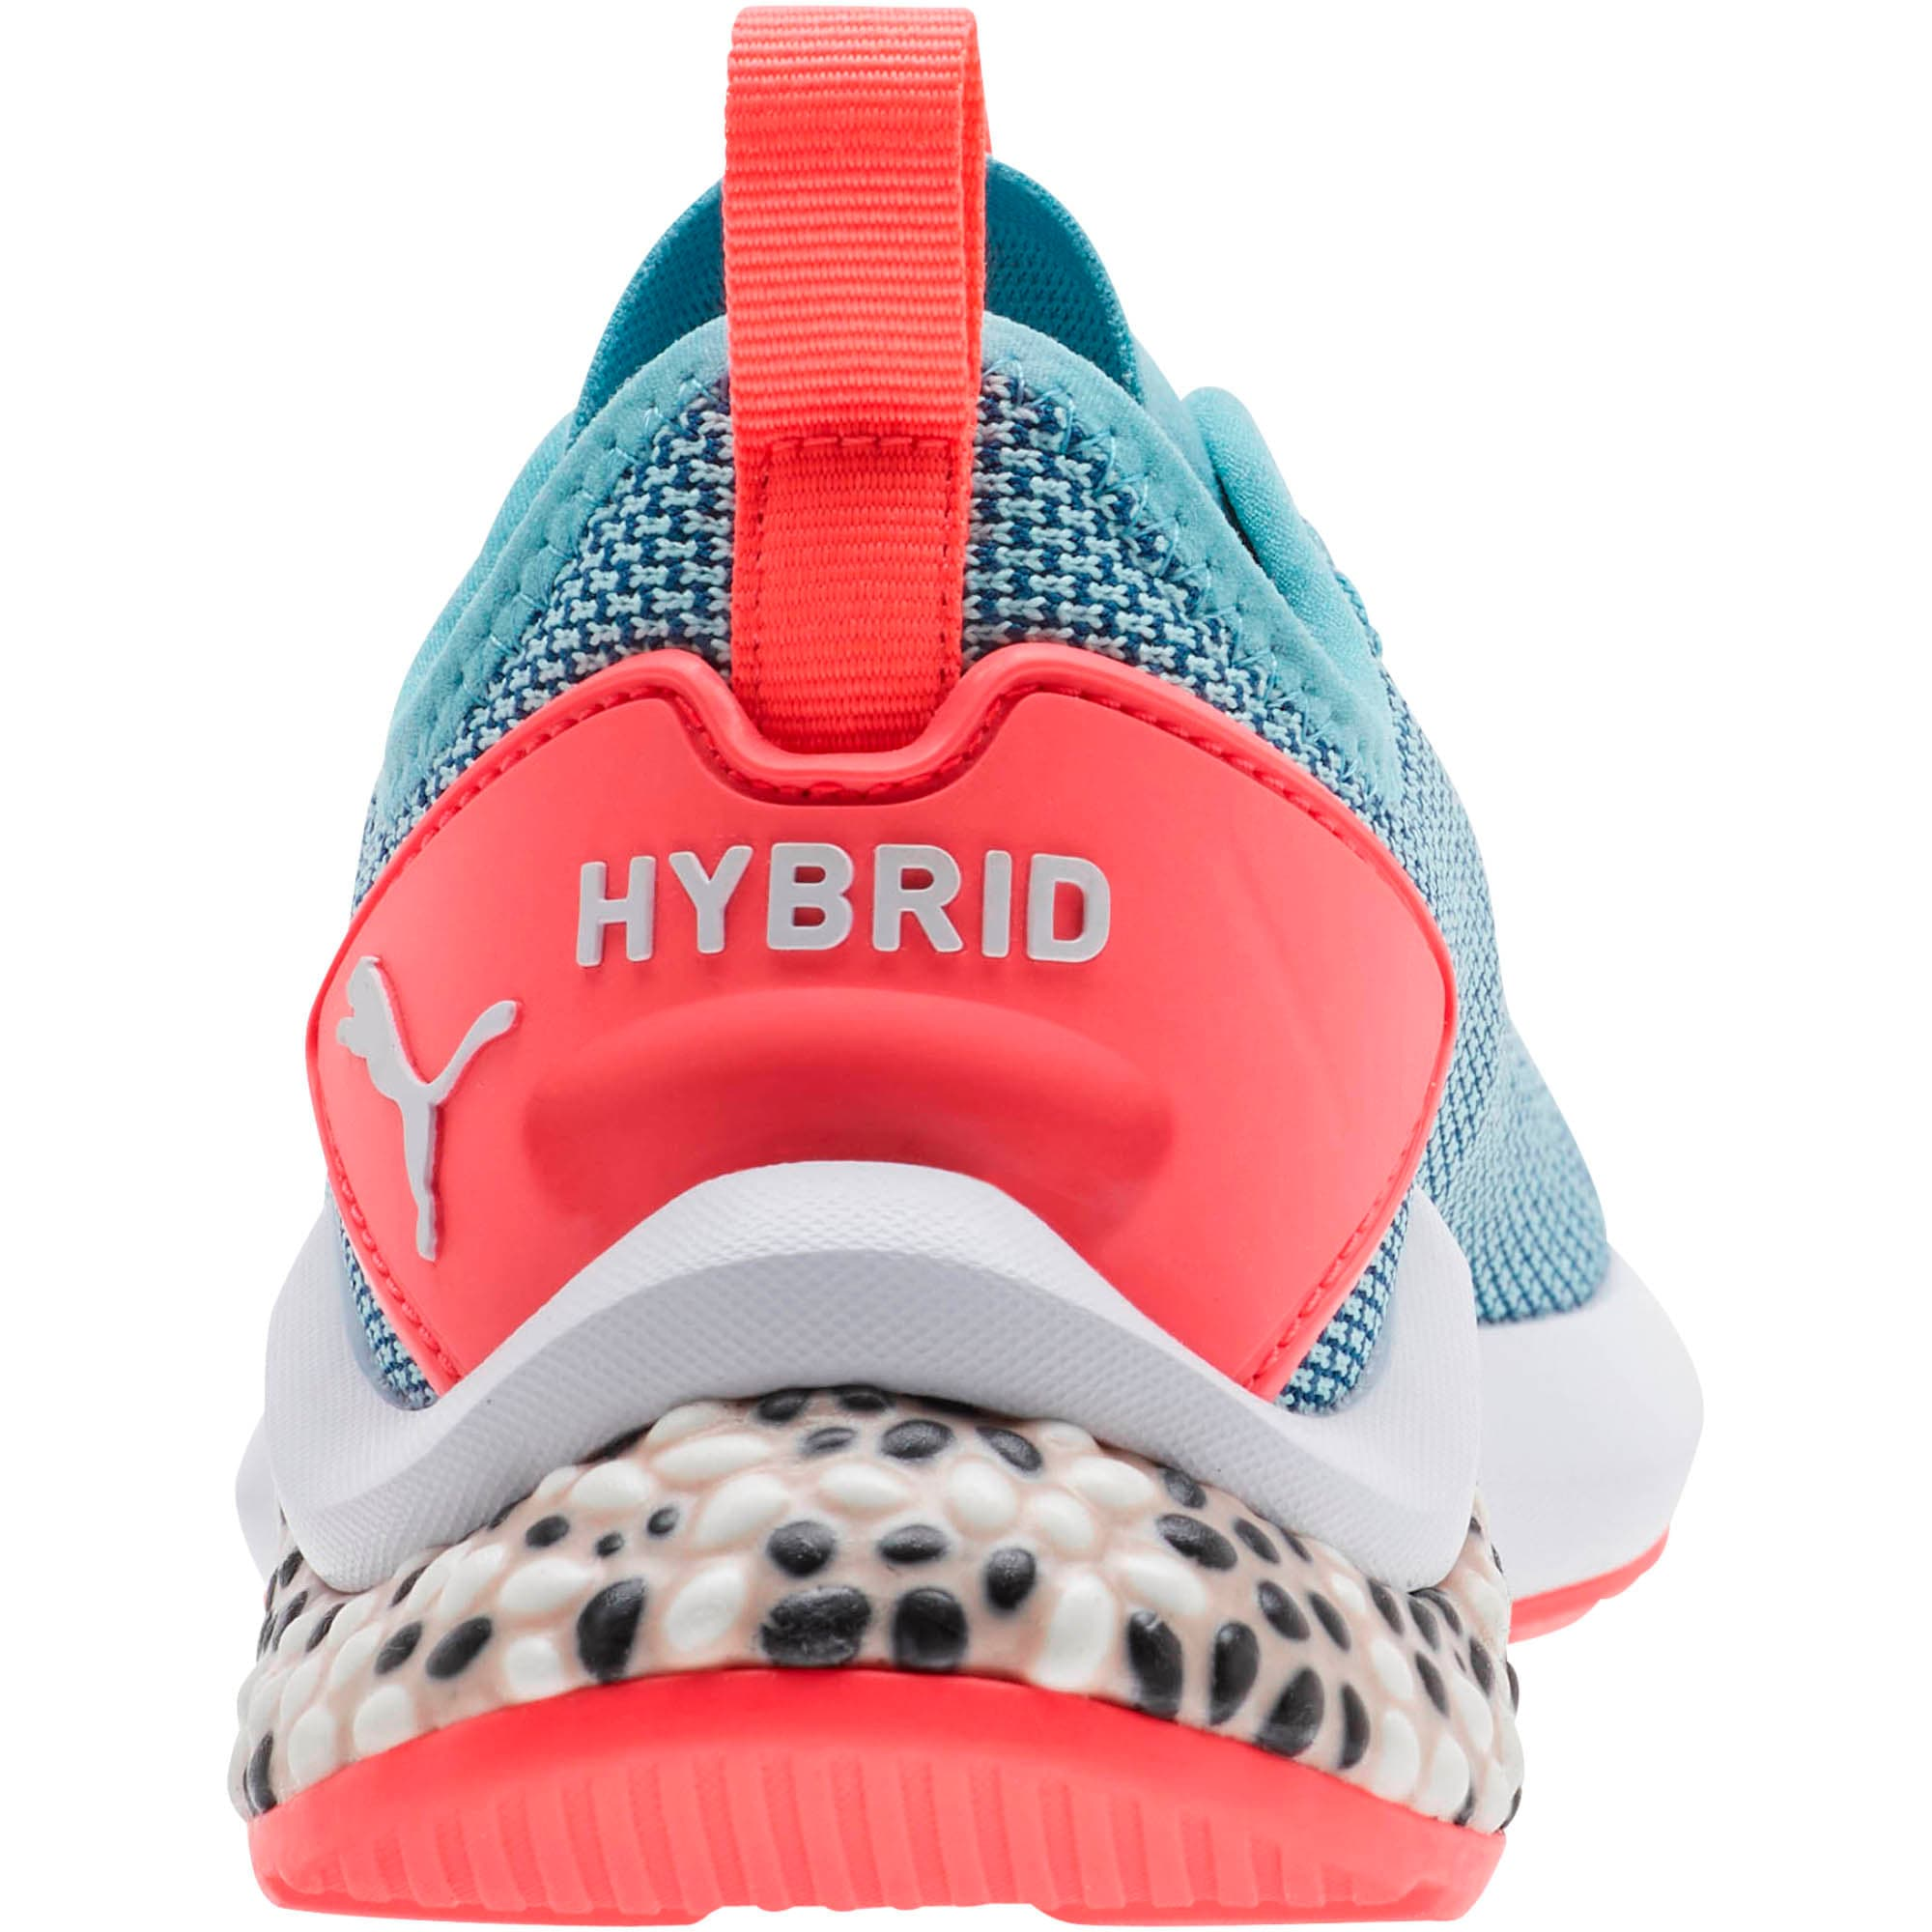 Thumbnail 3 of HYBRID NX Running Shoes JR, Milky Blue-Calypso Coral-Wht, medium